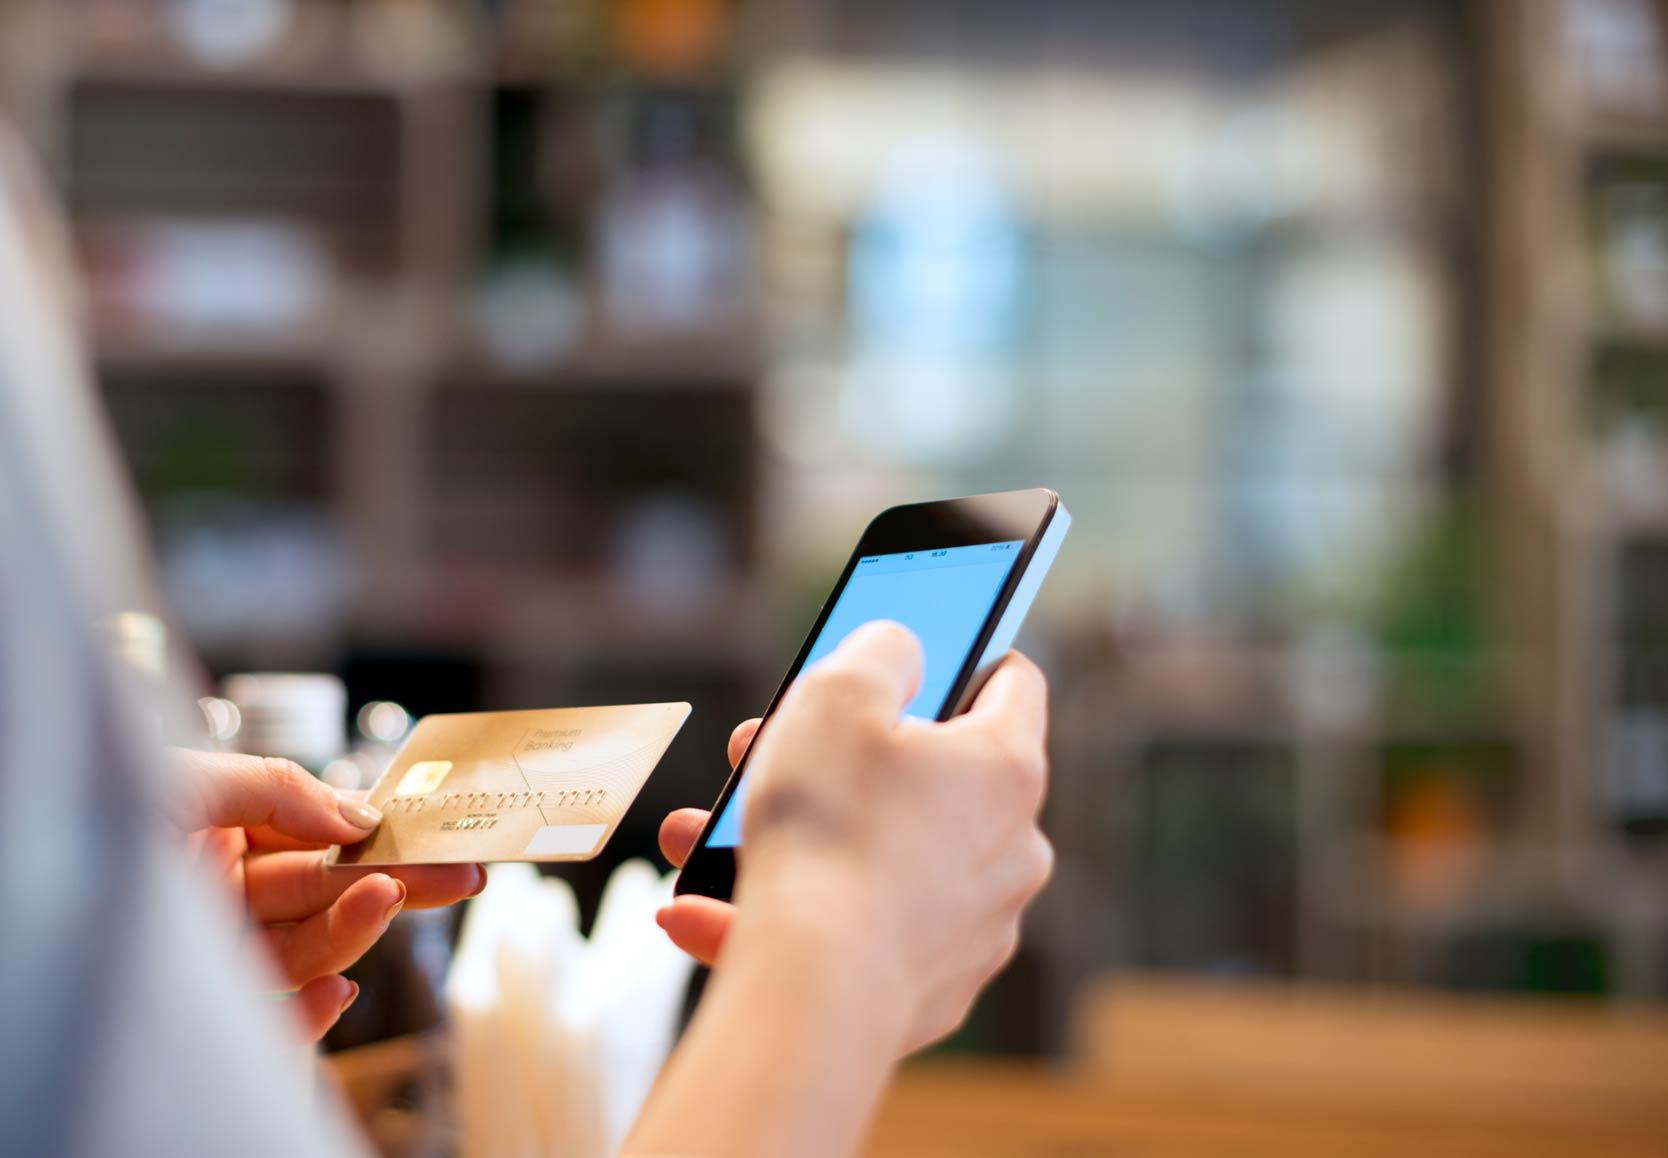 Mobile Payments in India Increased By 163% in 2019